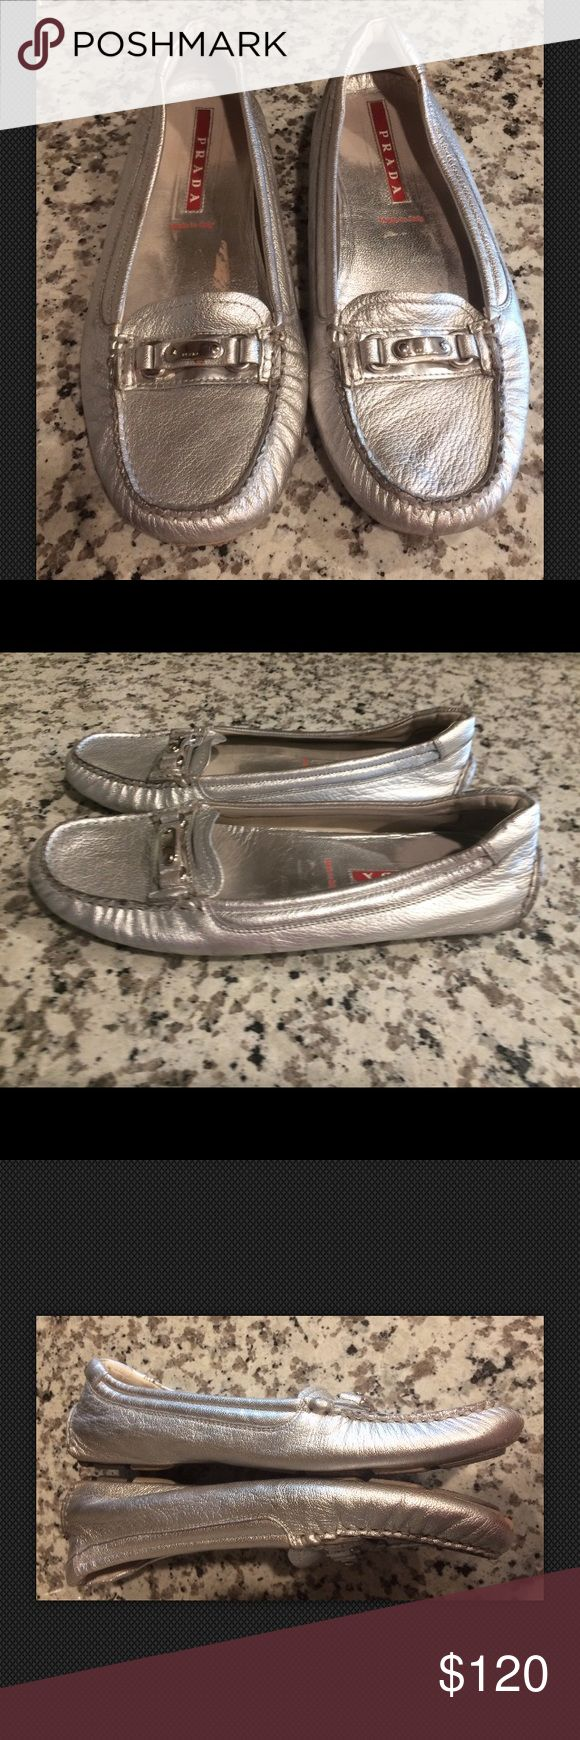 PRADA Women's Silver Leather Driving Shoes PRADA Women's Silver Leather Driving Shoes ~Size 38/US 8~  100% Authentic  Silver leather Silver tone hardware- Prada embossed on front Slide on  Size 38/ US 8  ** Has signs of wear throughout and on inside lining. Some nicks/marks on the leather and under front toe. Still has lots of life left- refer to photos. Auction priced to sell fast!   PRICED TO SELL FAST! PLEASE ASK ANY QUESTIONS BEFORE PURCHASE, THANKS CHECK OUT MY OTHER DESIGNER HANDBAGS…